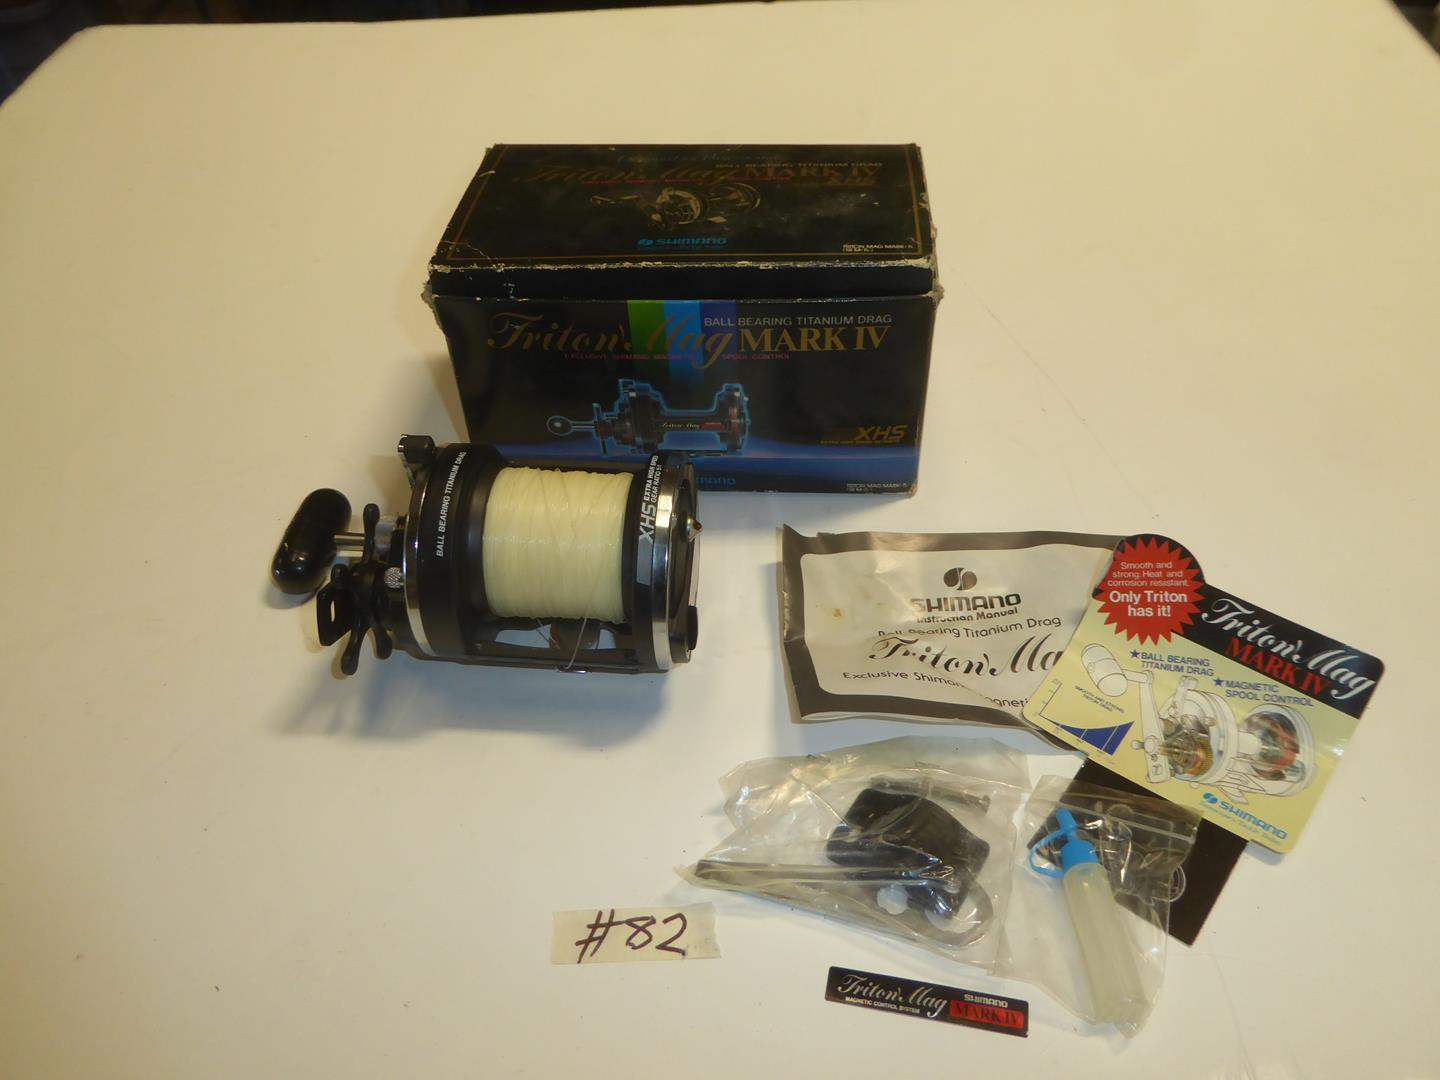 Lot # 82 - Shimano Triton Mag Mark IV Fishing Reel (main image)